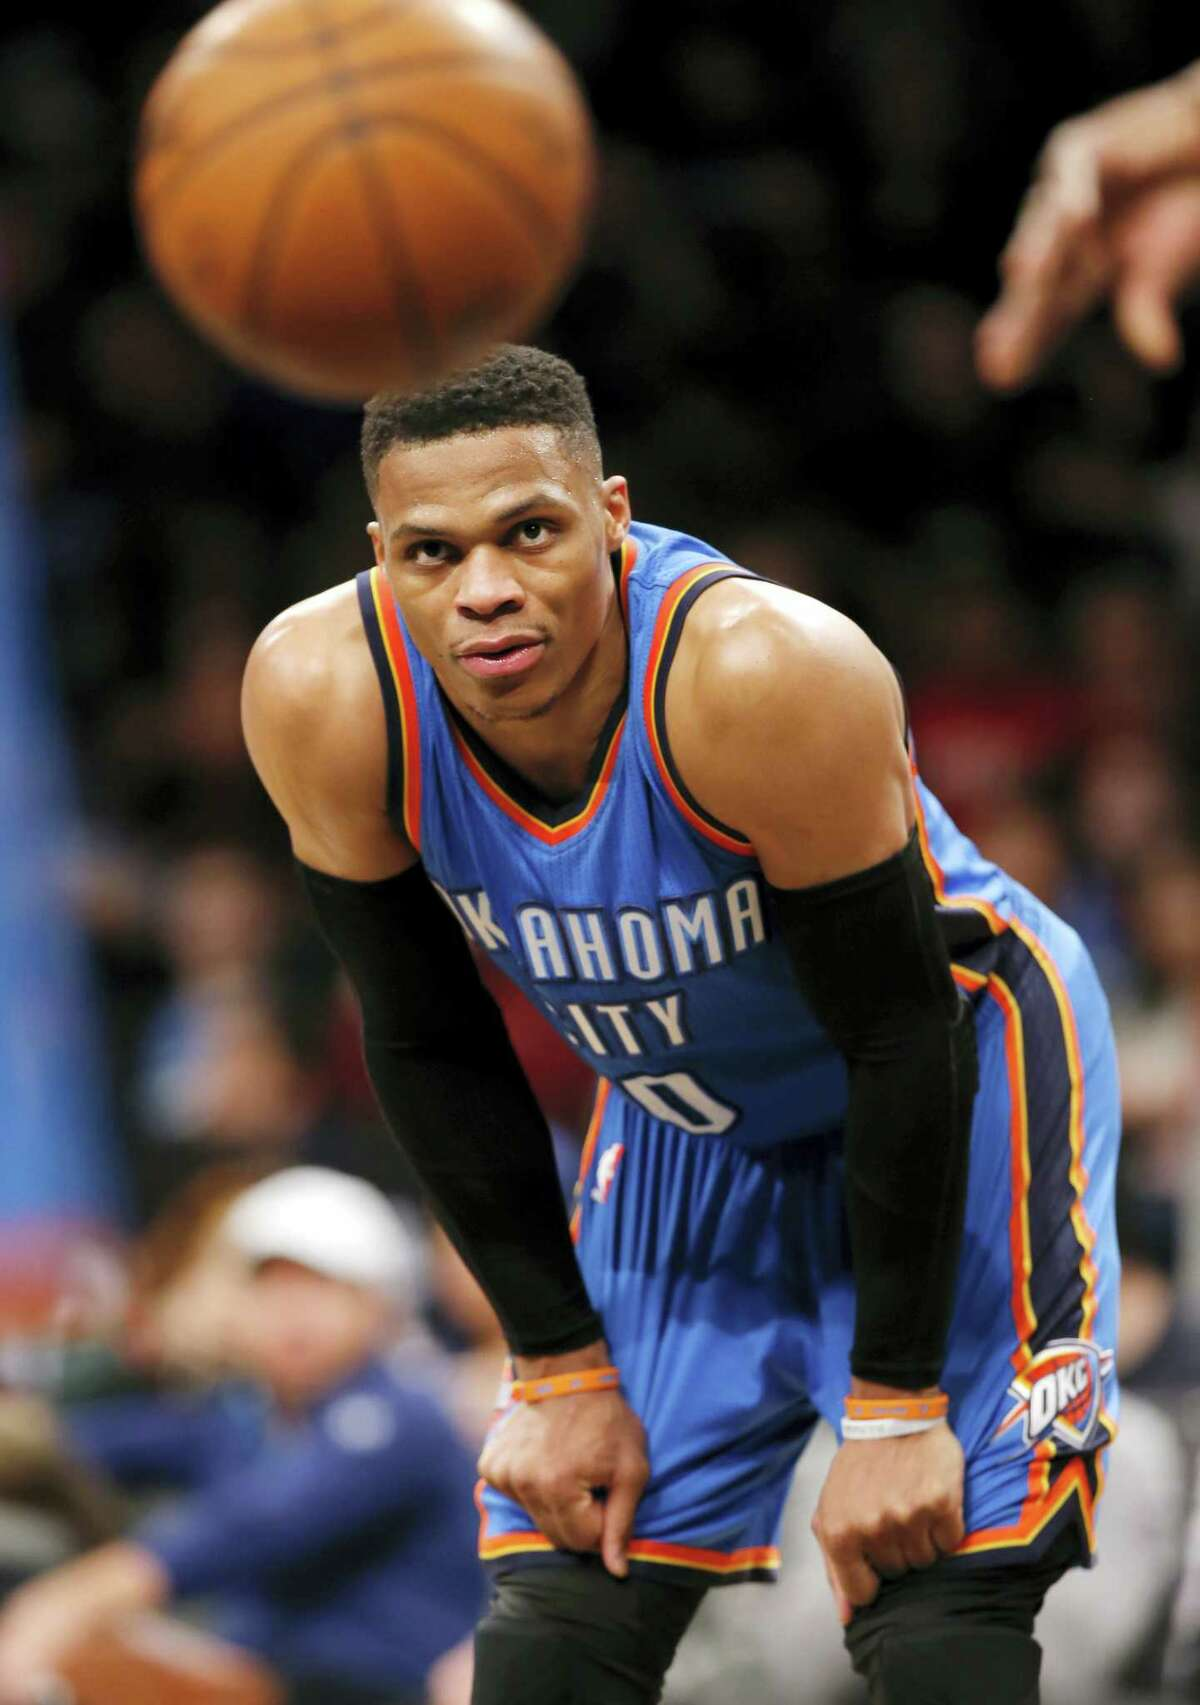 Oklahoma City Thunder guard Russell Westbrook (0) watches as a referee throws the ball to a Thunder player for a free throw in the second half of an NBA basketball game against the Brooklyn Nets, Tuesday, March 14, 2017, in New York. Westbrook had a triple double with 25 points, 19 assists and 11 rebounds as the Thunder defeated the Nets 122-104. (AP Photo/Kathy Willens)